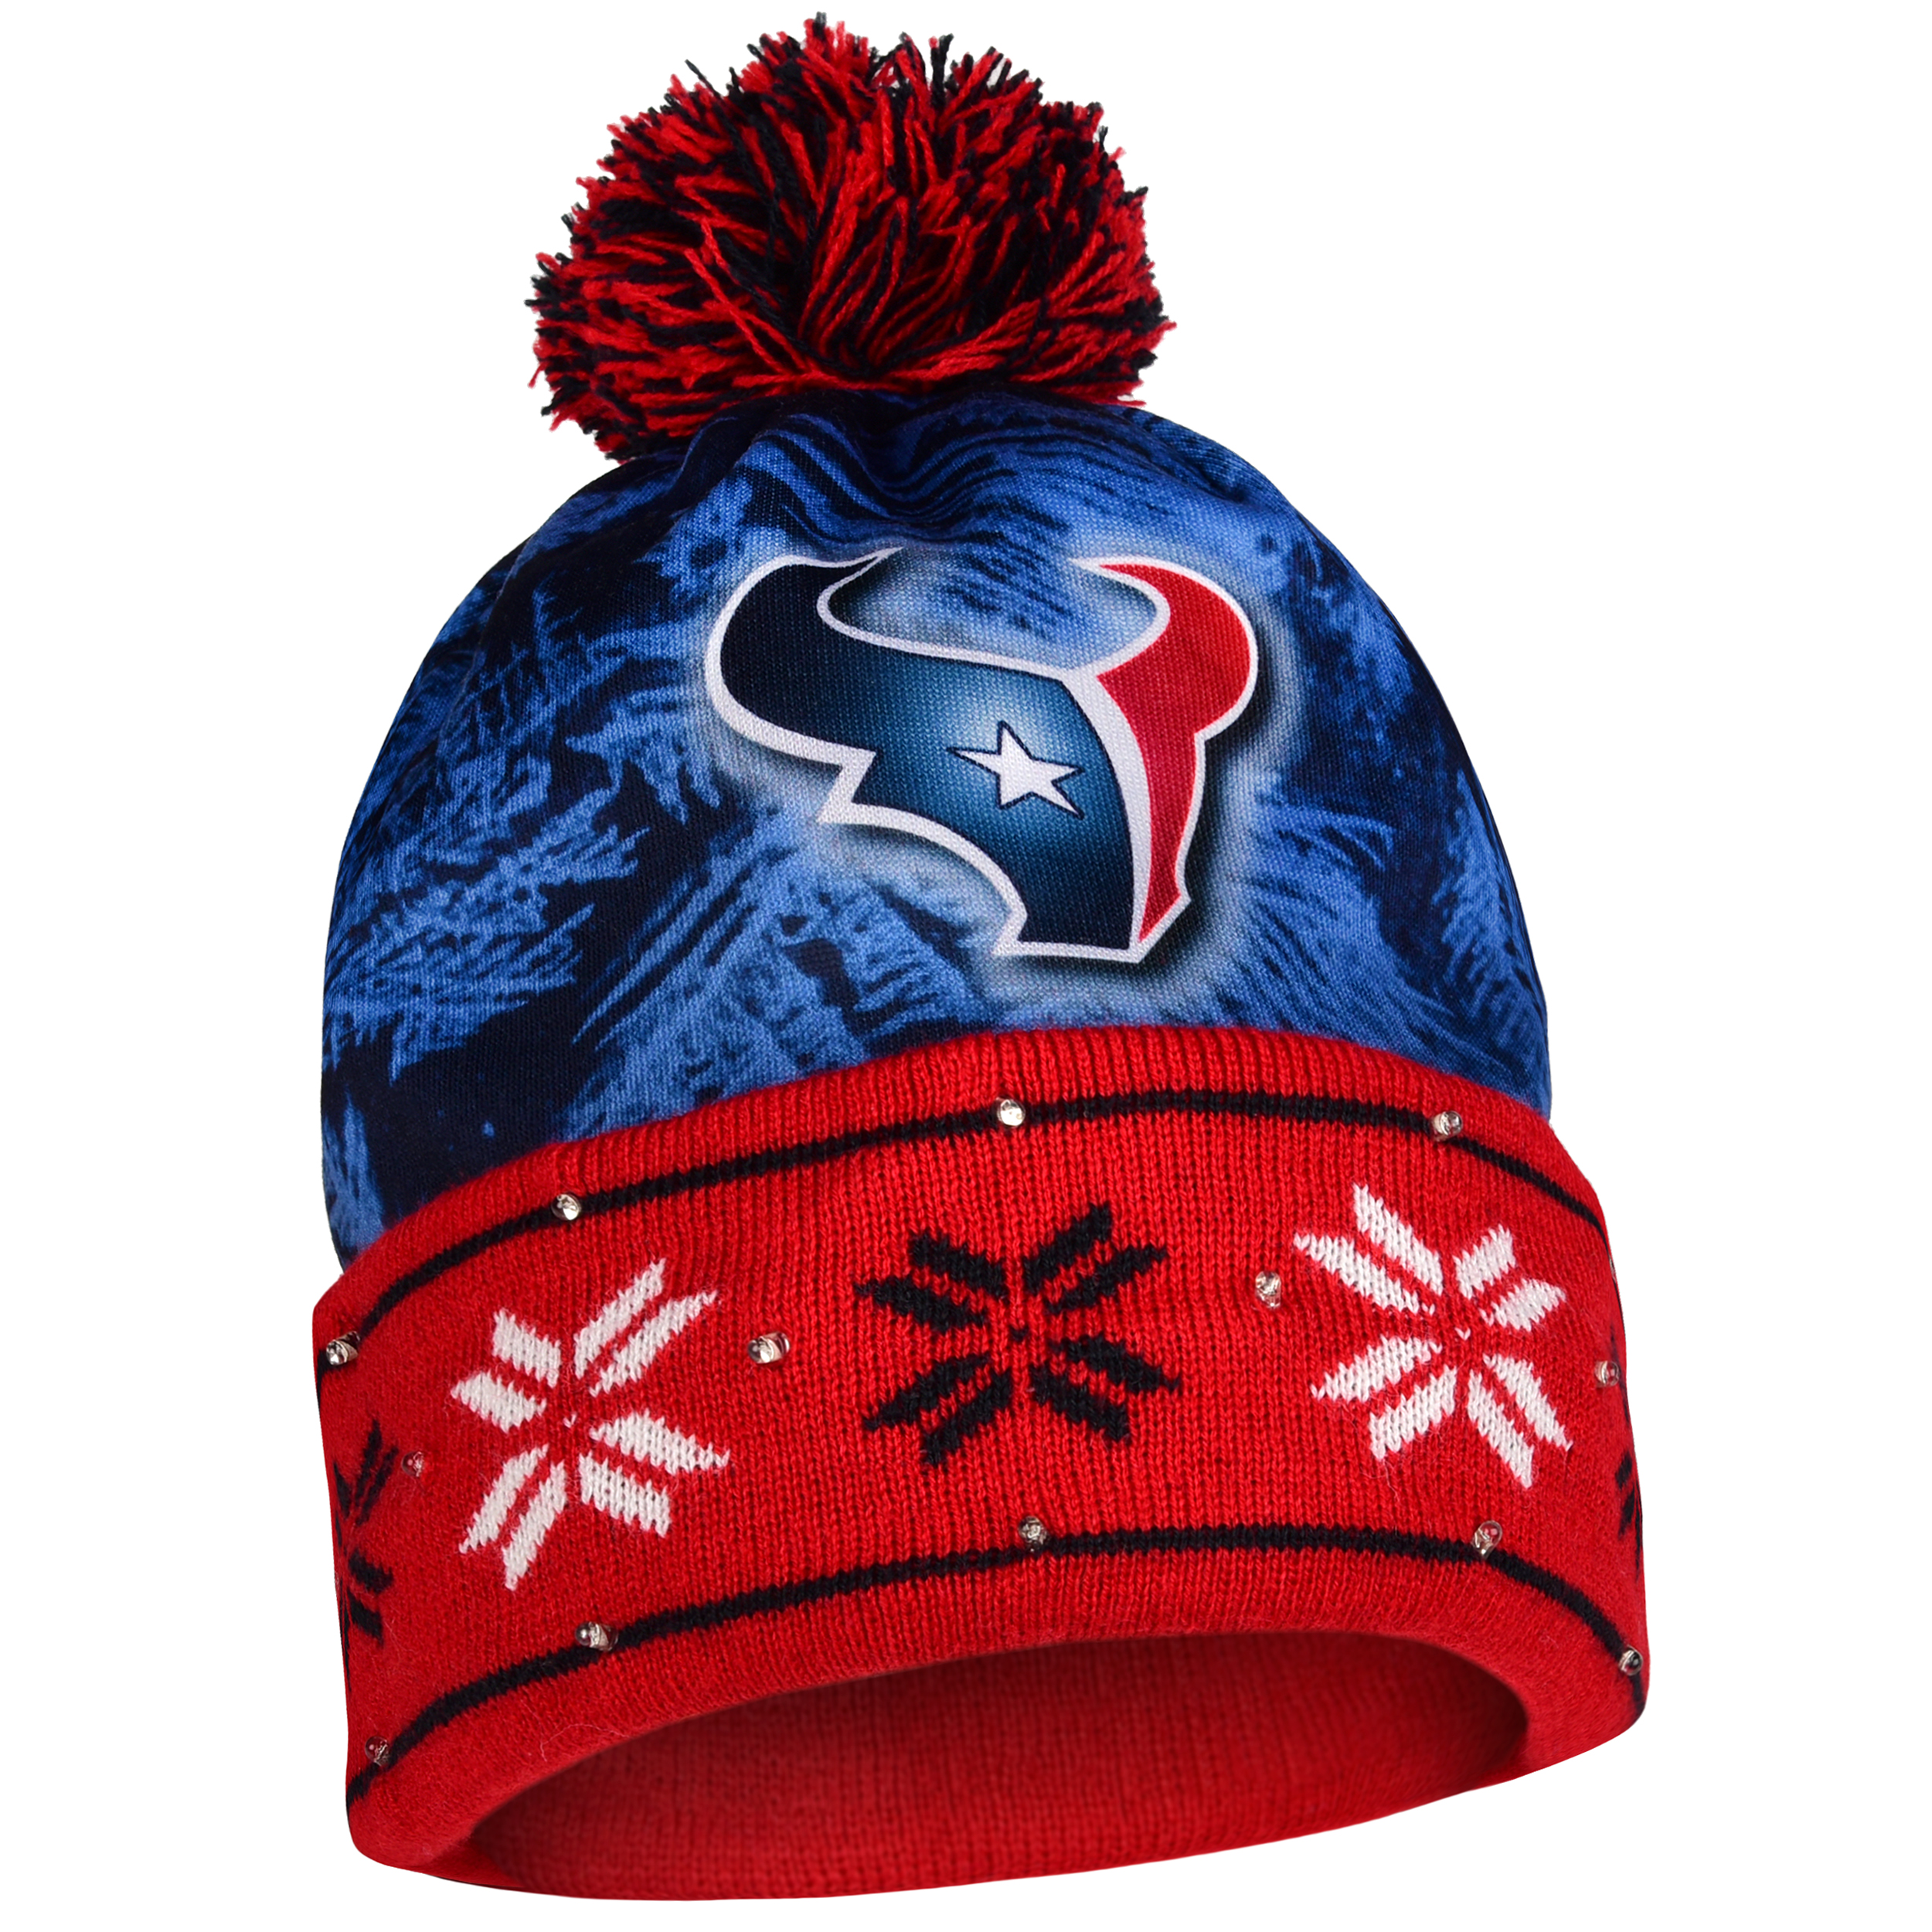 Houston Texans Official NFL Big Logo Beanie Stocking Stretch Knit Sock Hat by Forever Collectibles 681724 by Forever Collectibles